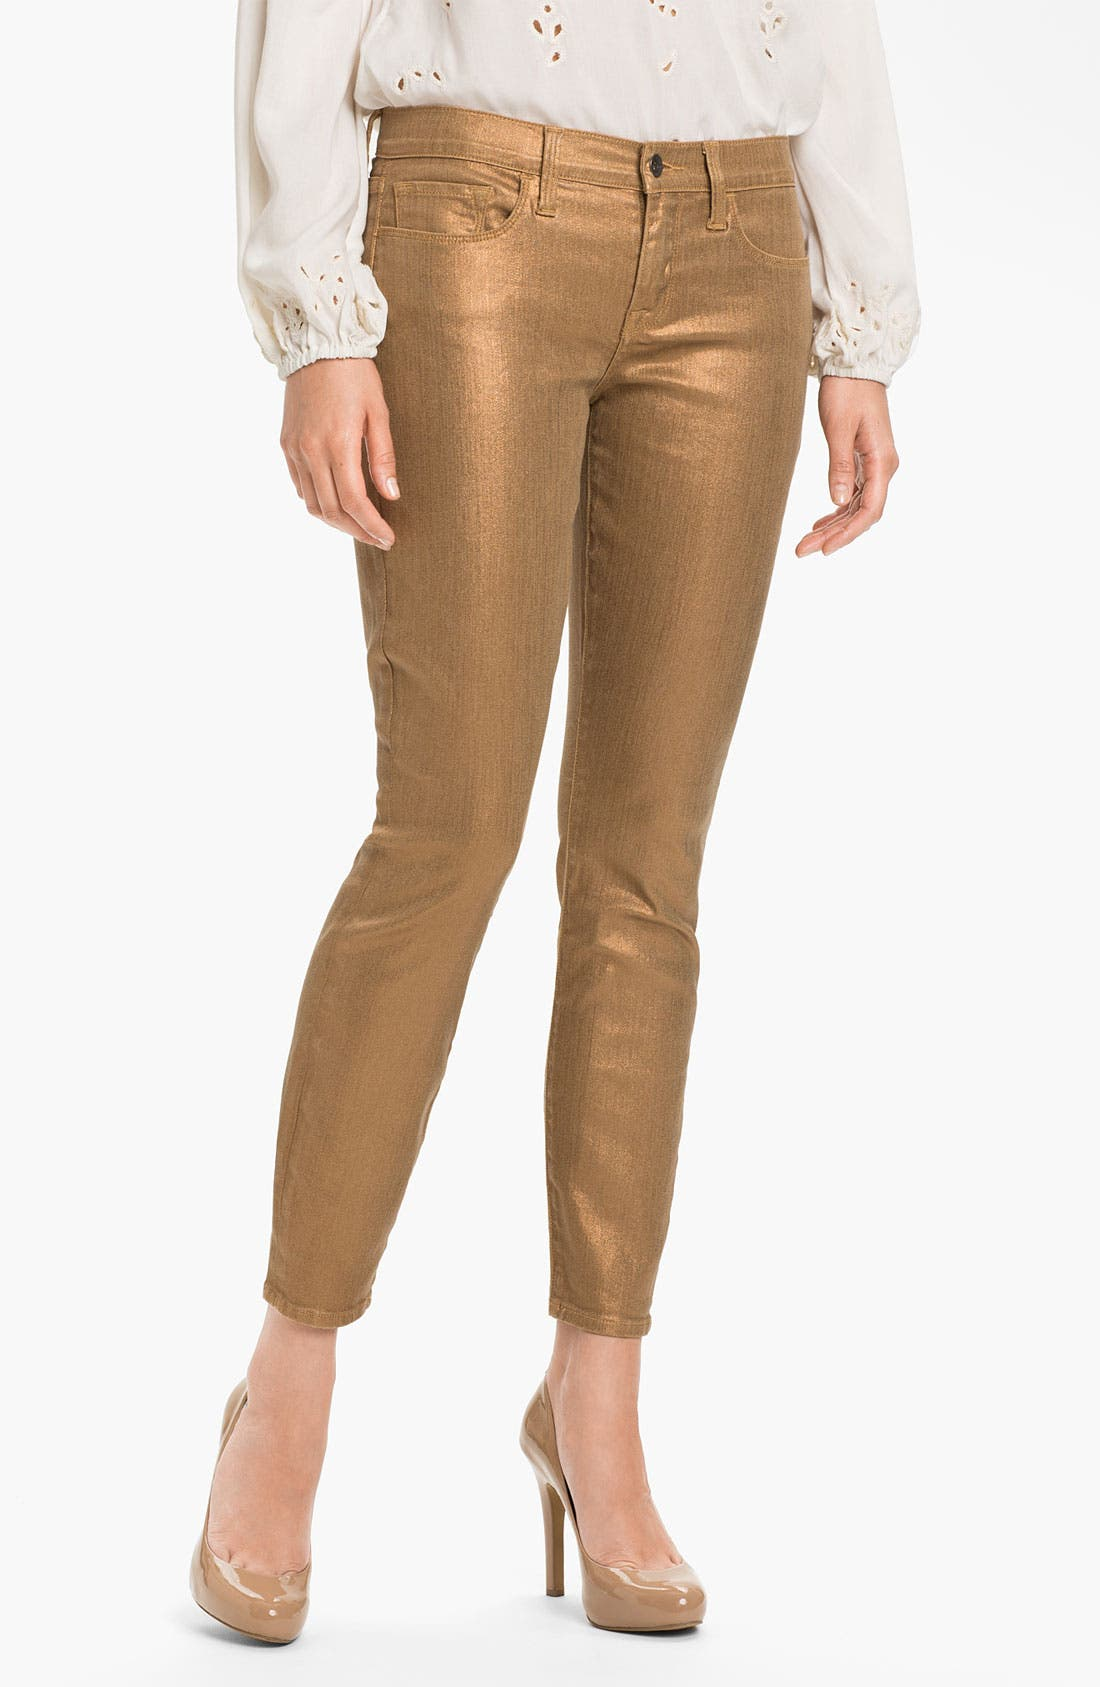 Alternate Image 1 Selected - Lucky Brand 'Sofia' Coated Sparkle Jeans (Online Exclusive)